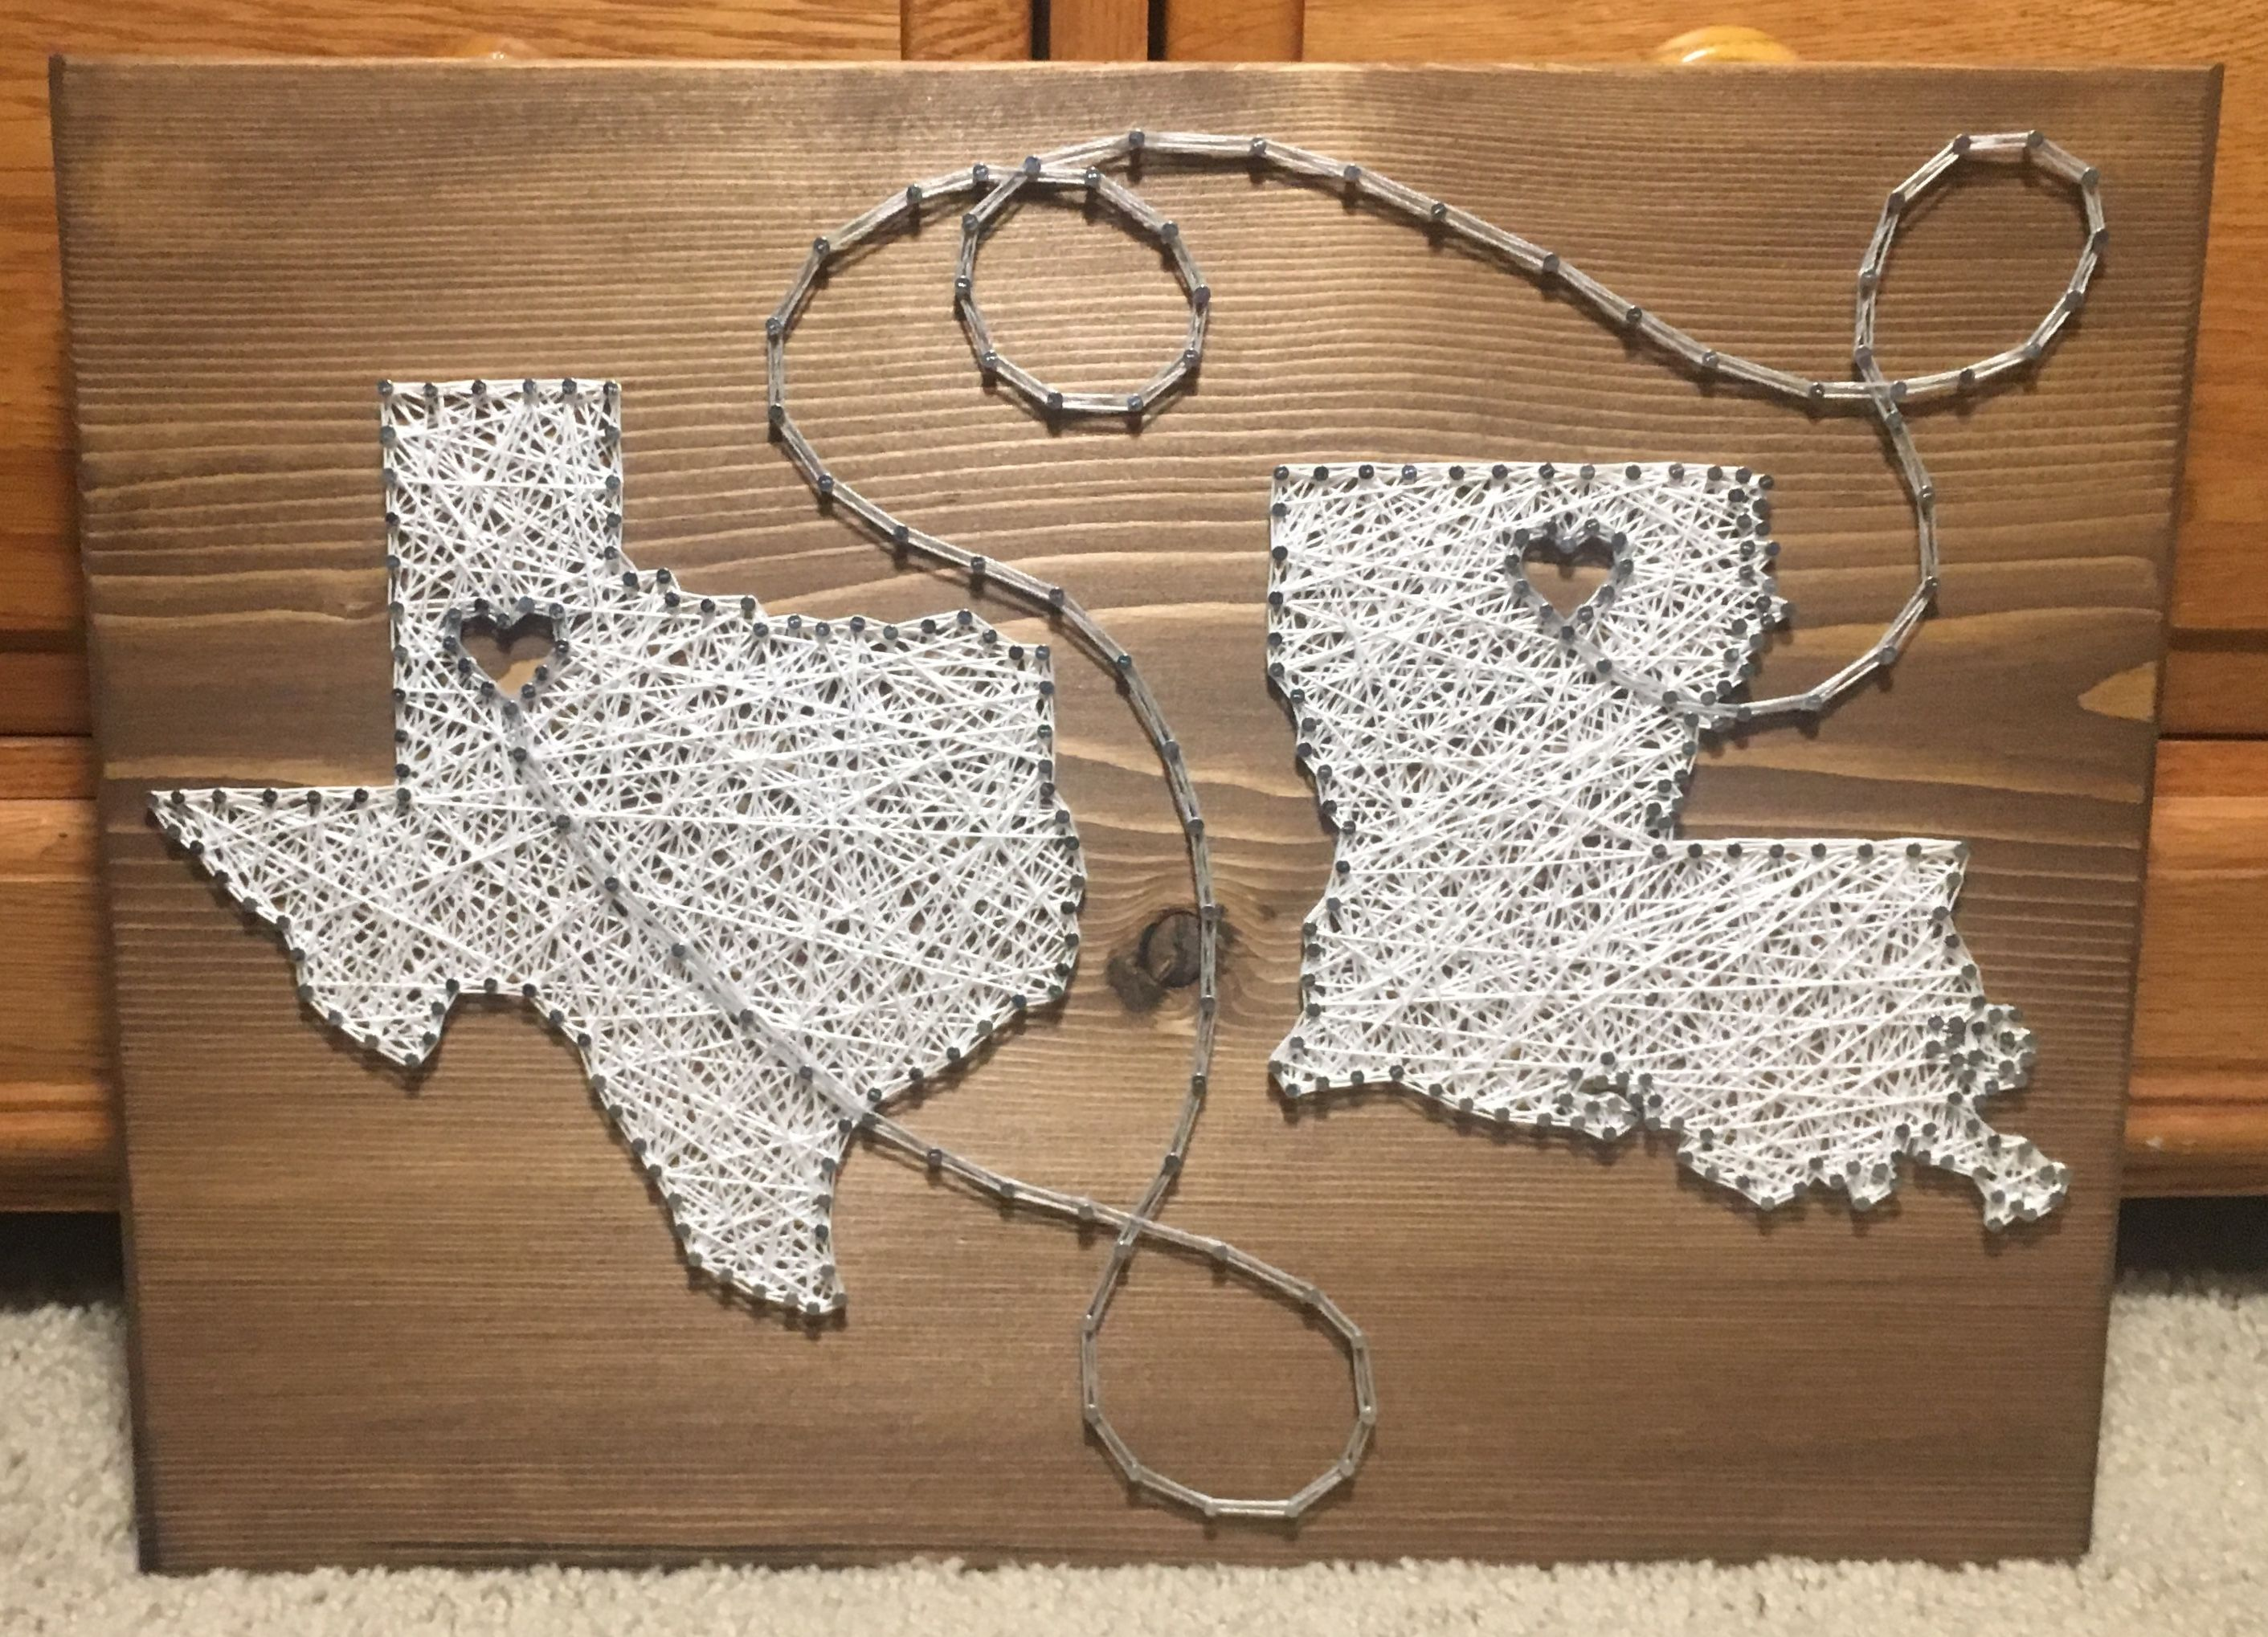 CUSTOM Two States Countries Connecting String Art